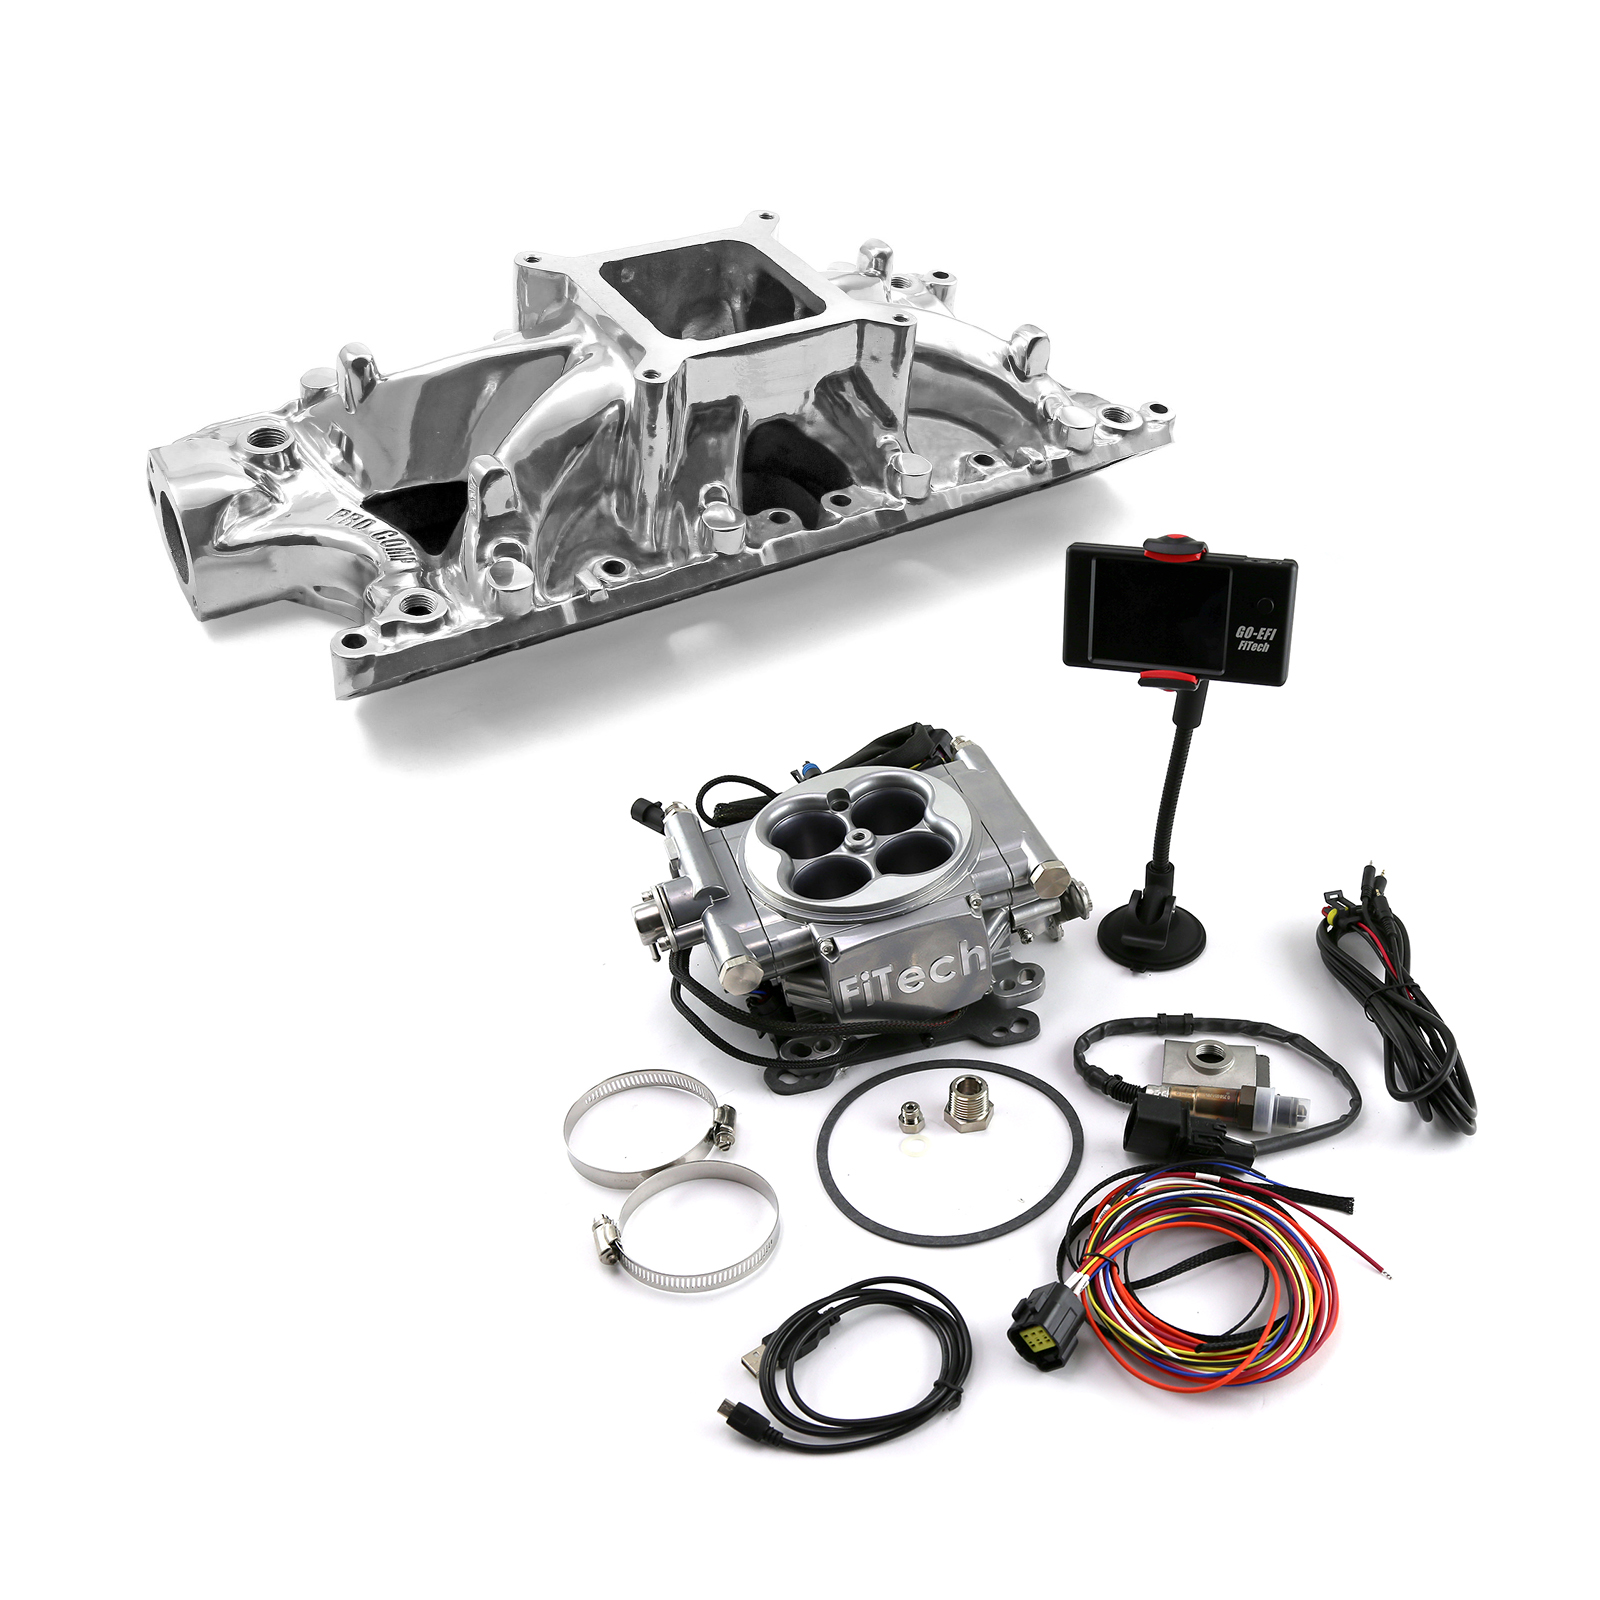 Ford SB 289 302W Shootout Manifold & FiTech Go EFI 30001 Fuel Injection